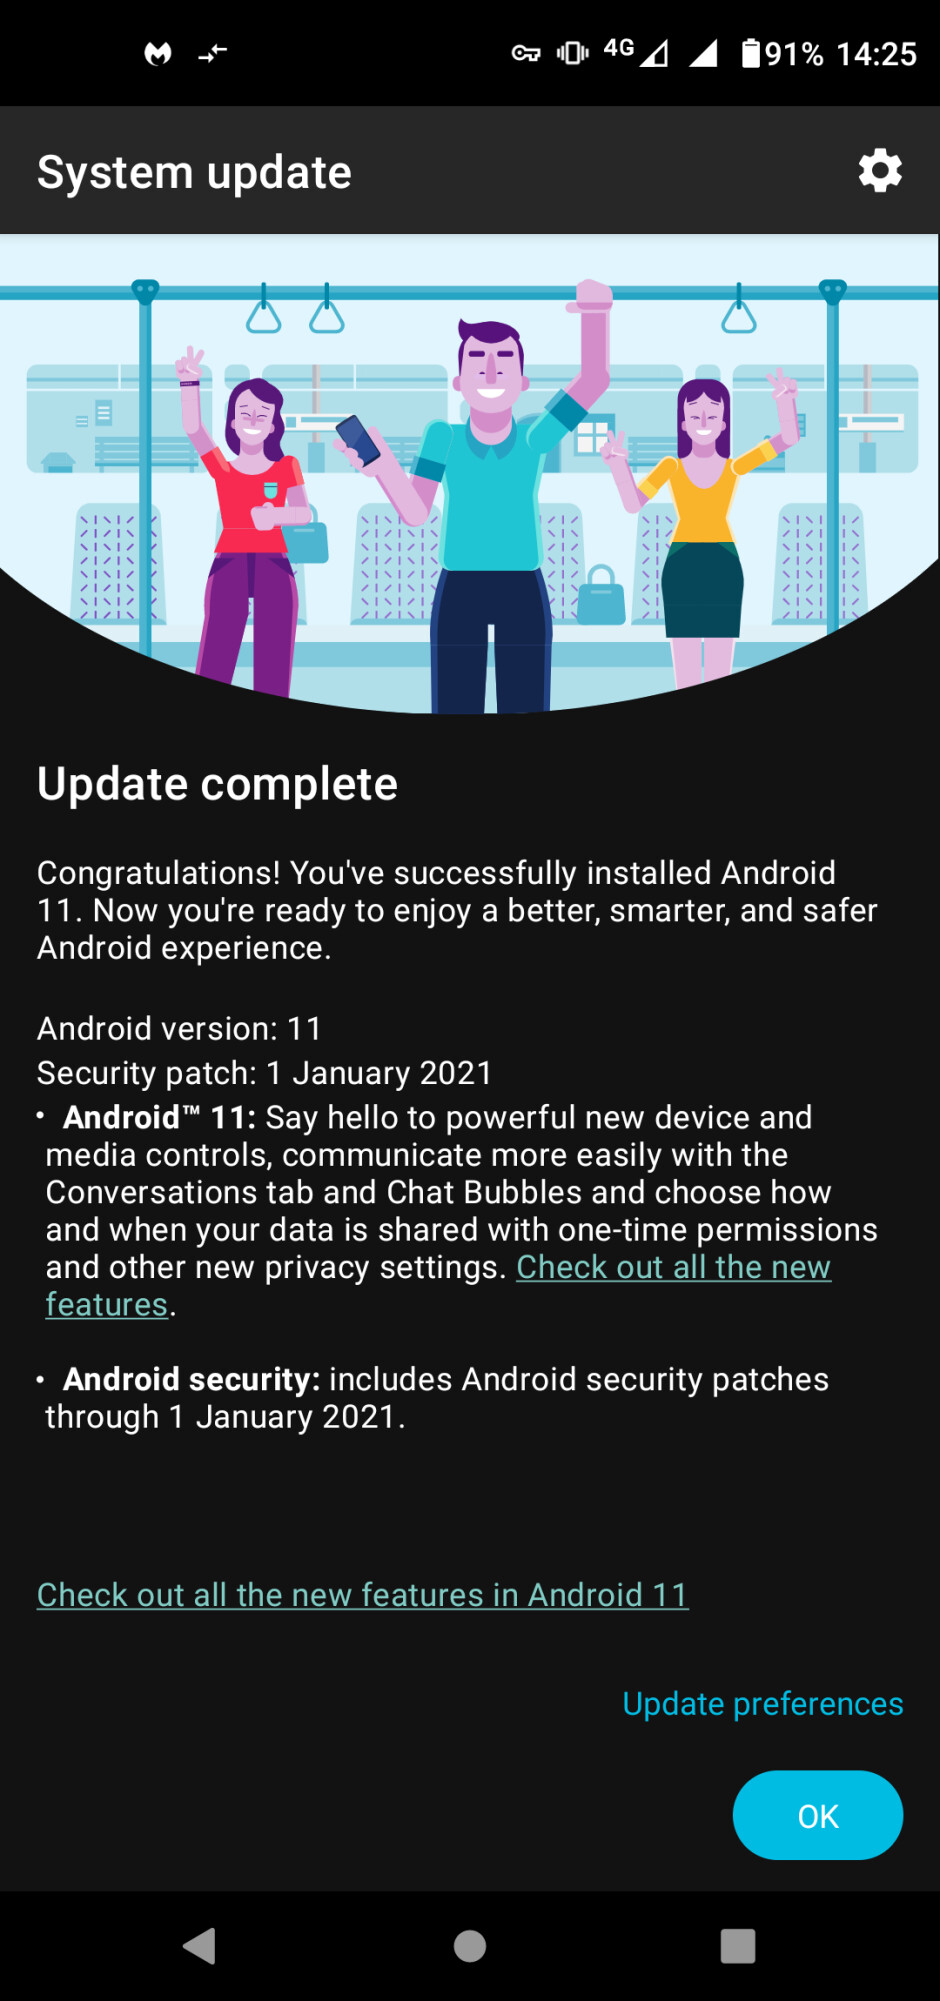 Moto G Pro Android 11 update - Motorola's Android 11 rollout finally begins with a mid-ranger